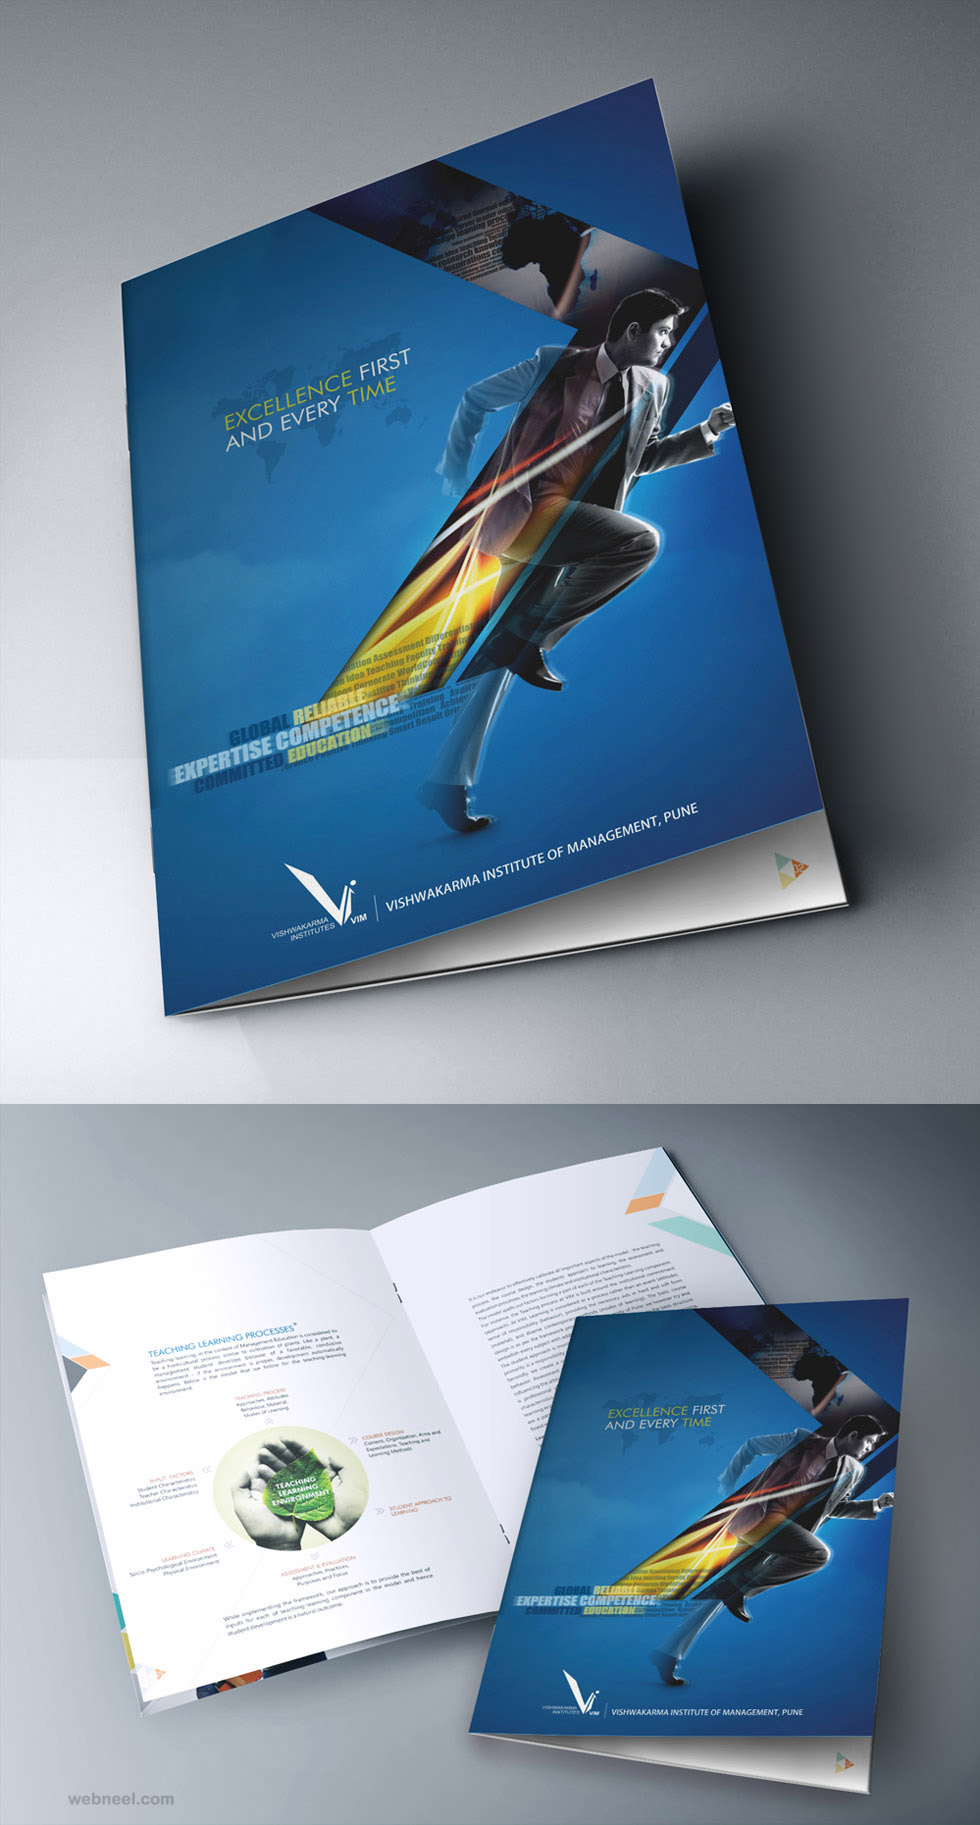 creative brochure design ideas brochure design ideas - Brochure Design Ideas